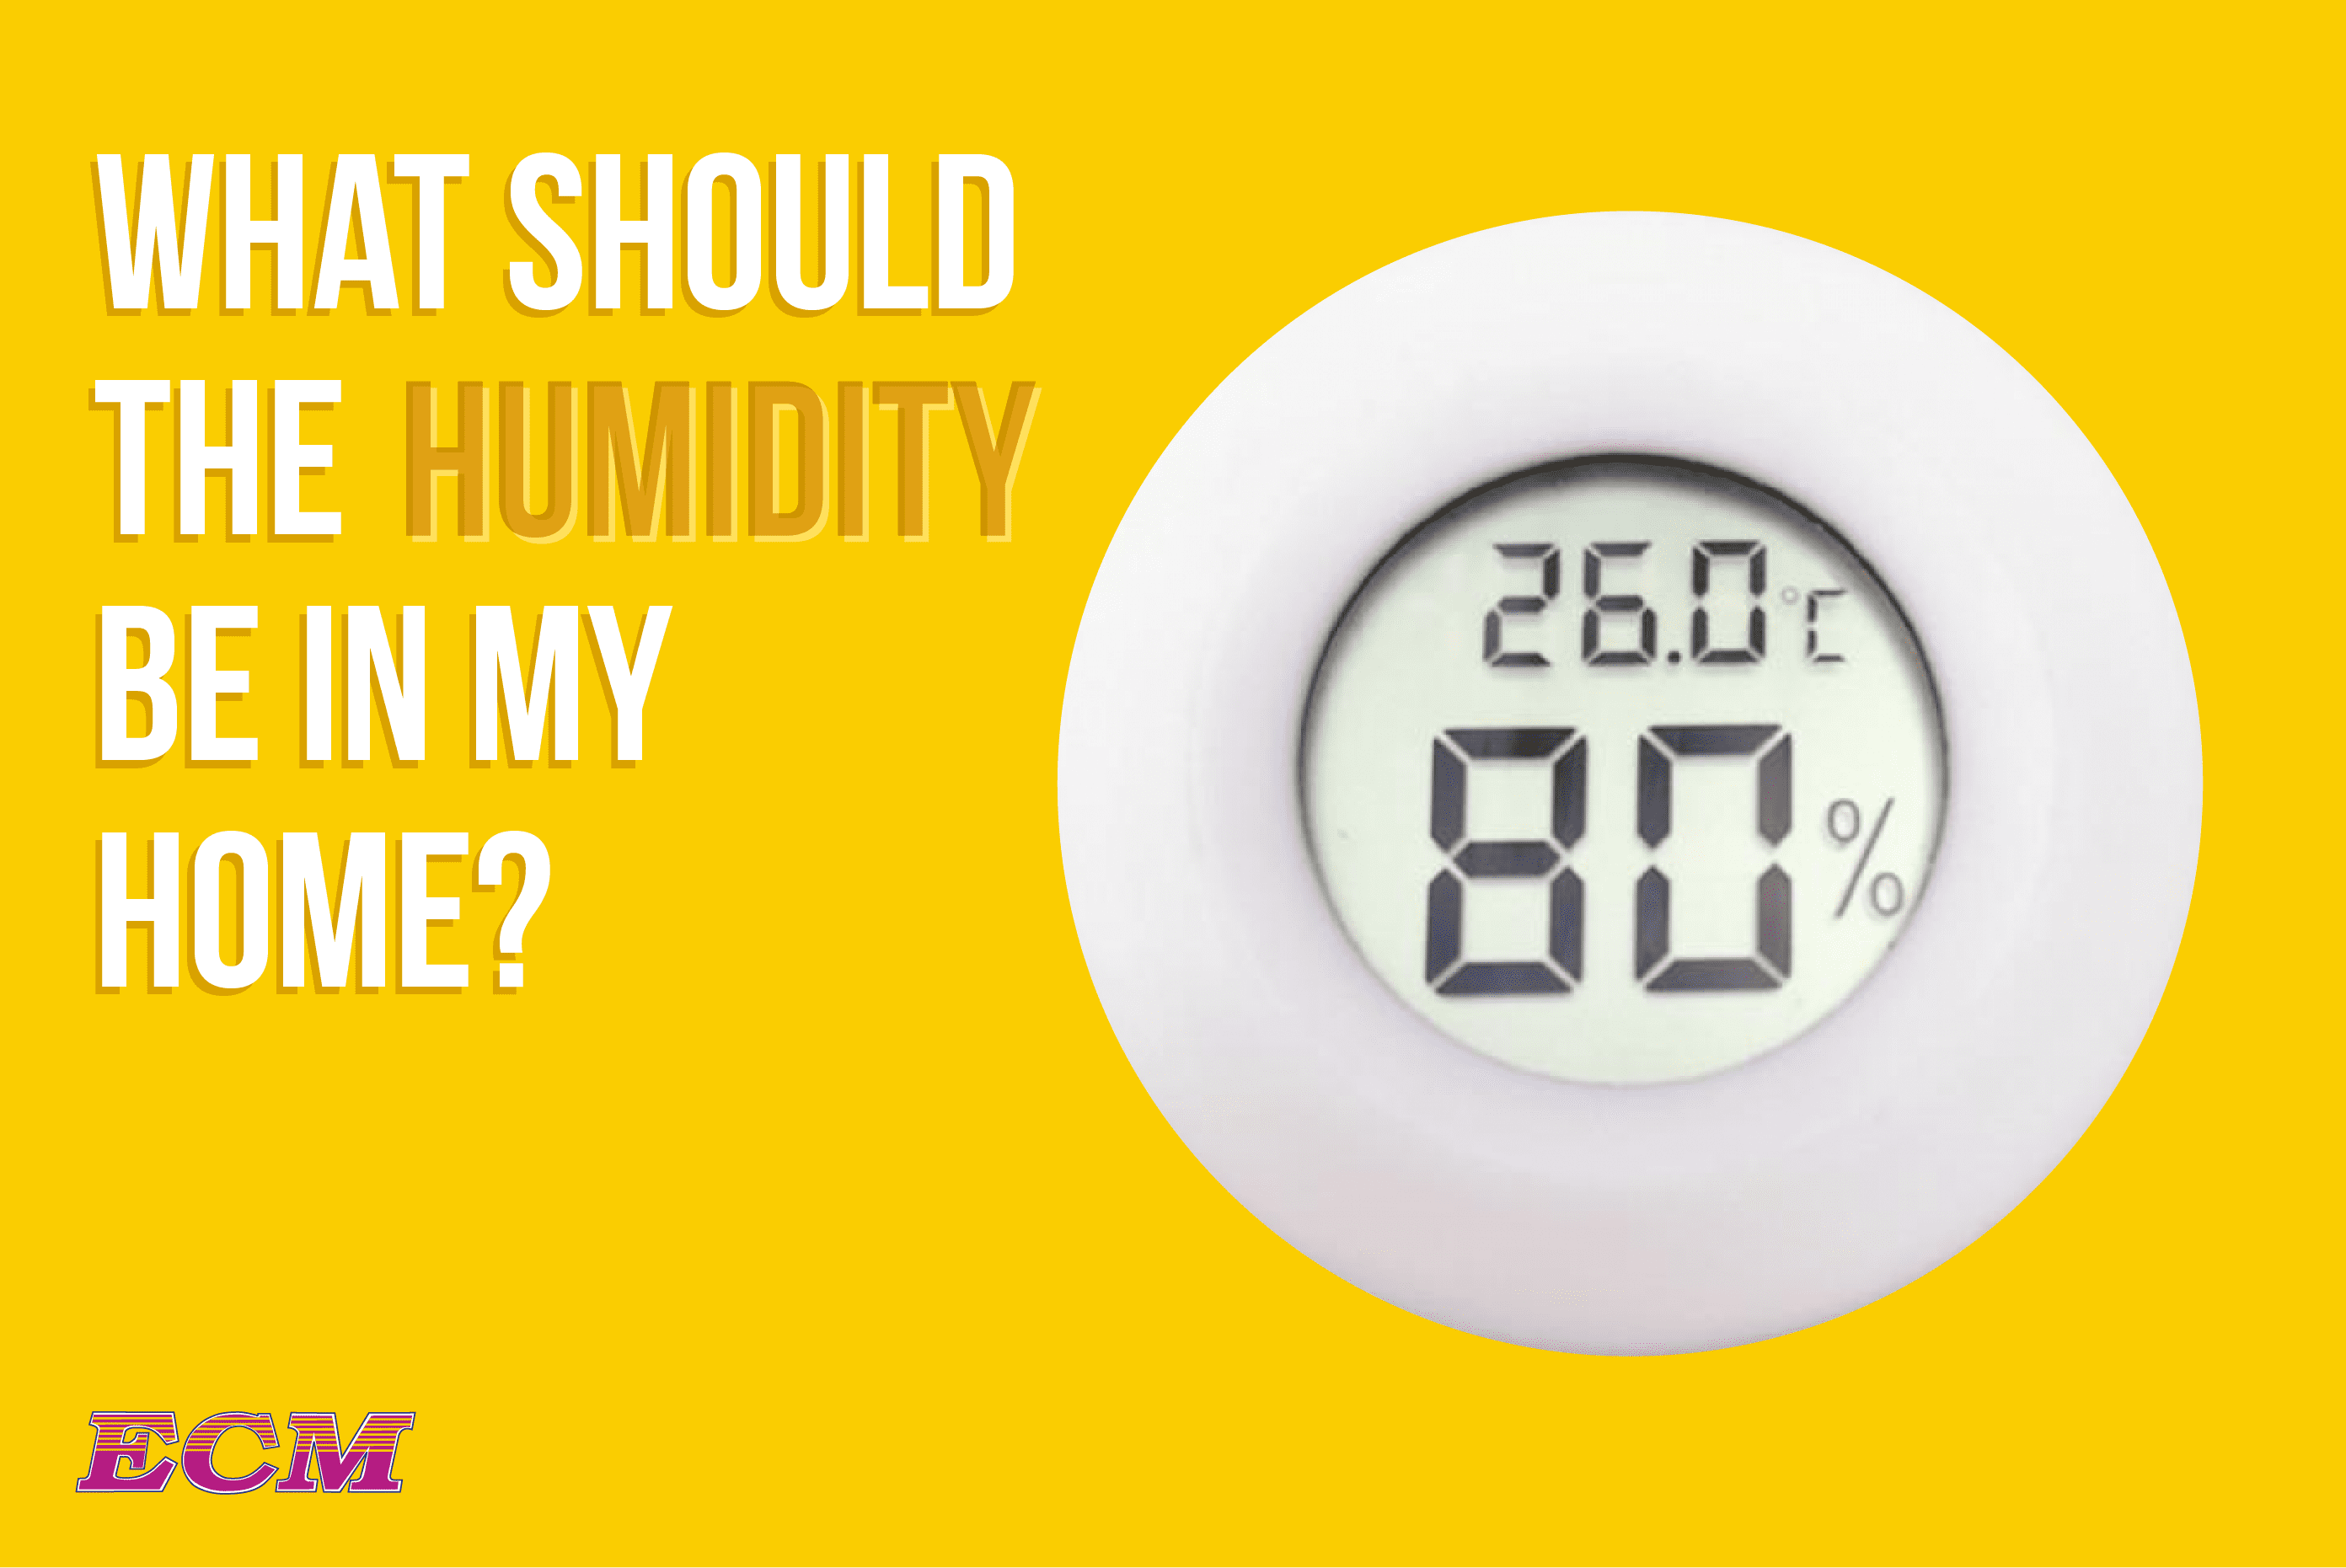 What Should Humidity Be in My Home